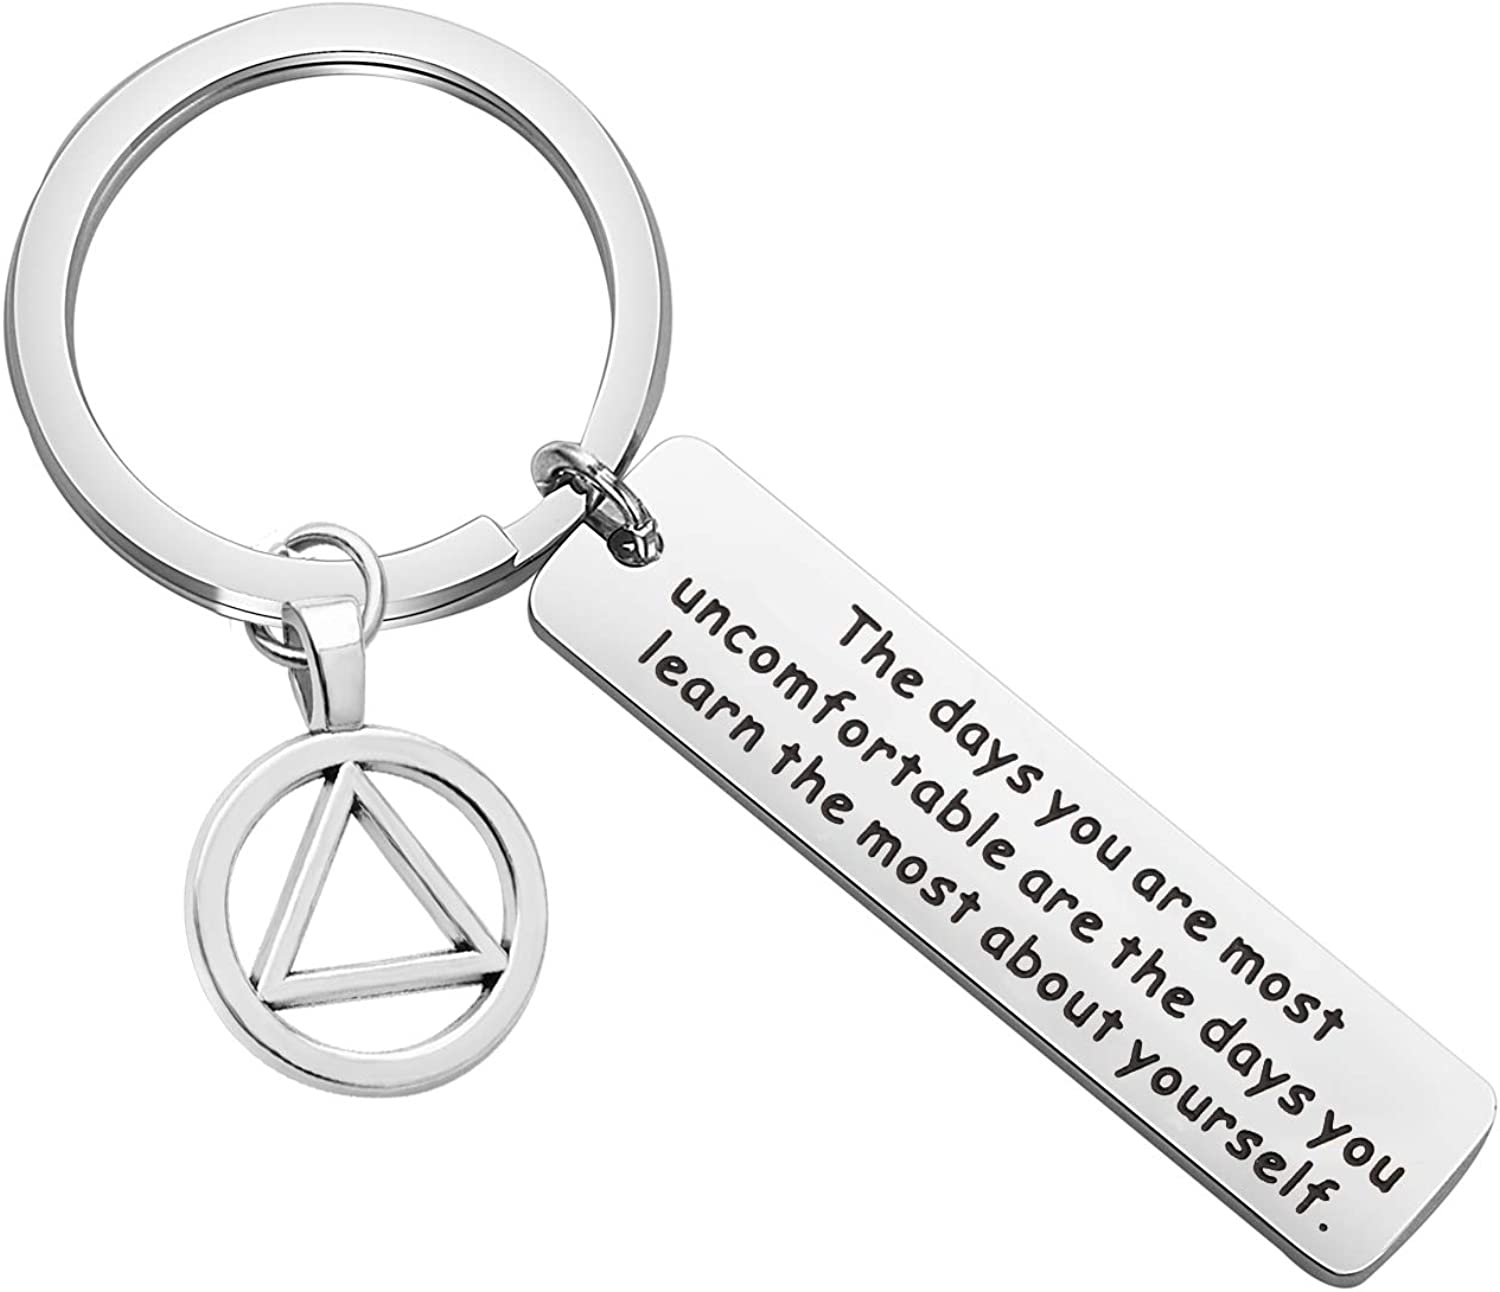 Sobriety Medallion Sobriety Coin AA Sober Anniversary Gift NA 12 Step Recovery Gift Personalized Sobriety Key Ring Sobriety Key Ring